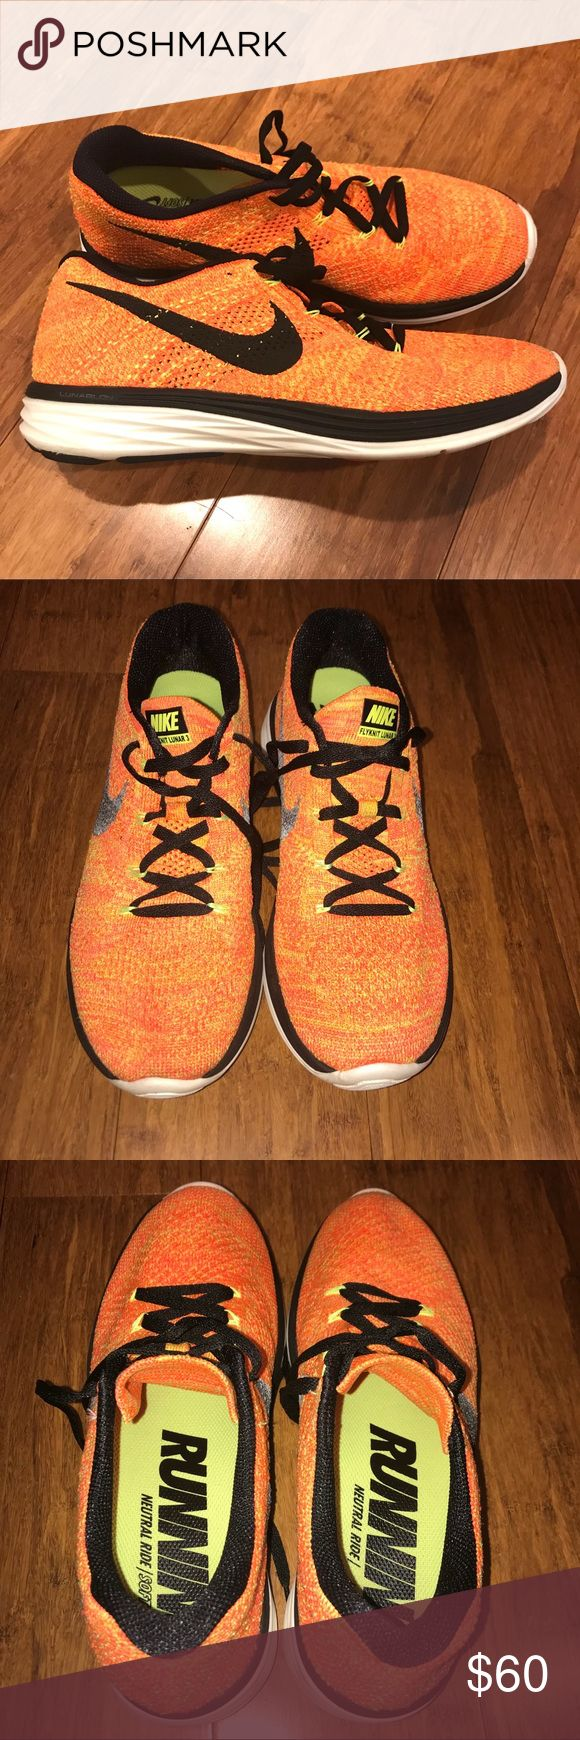 Women's Nike Flyknit Lunar 3 Neutral Running Shoe Women's Nike Flyknit Lunar 3 Neutral Running Shoe Excellent Condition! No Trades Nike Shoes Athletic Shoes